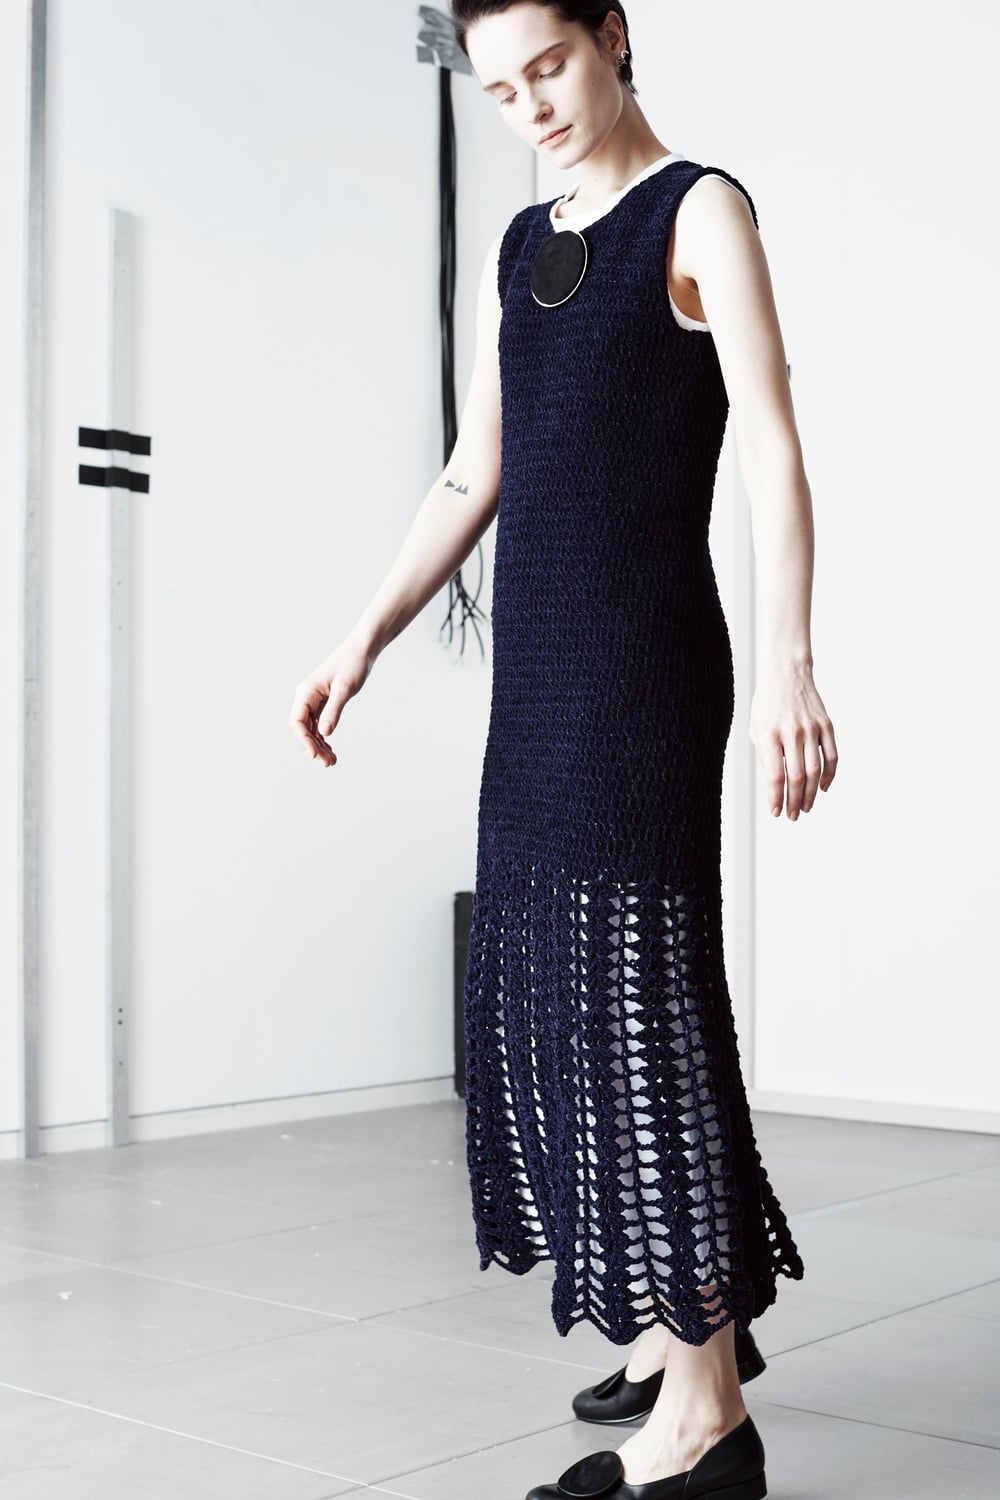 sportmax-pre-fall-2016-lookbook-30.jpg